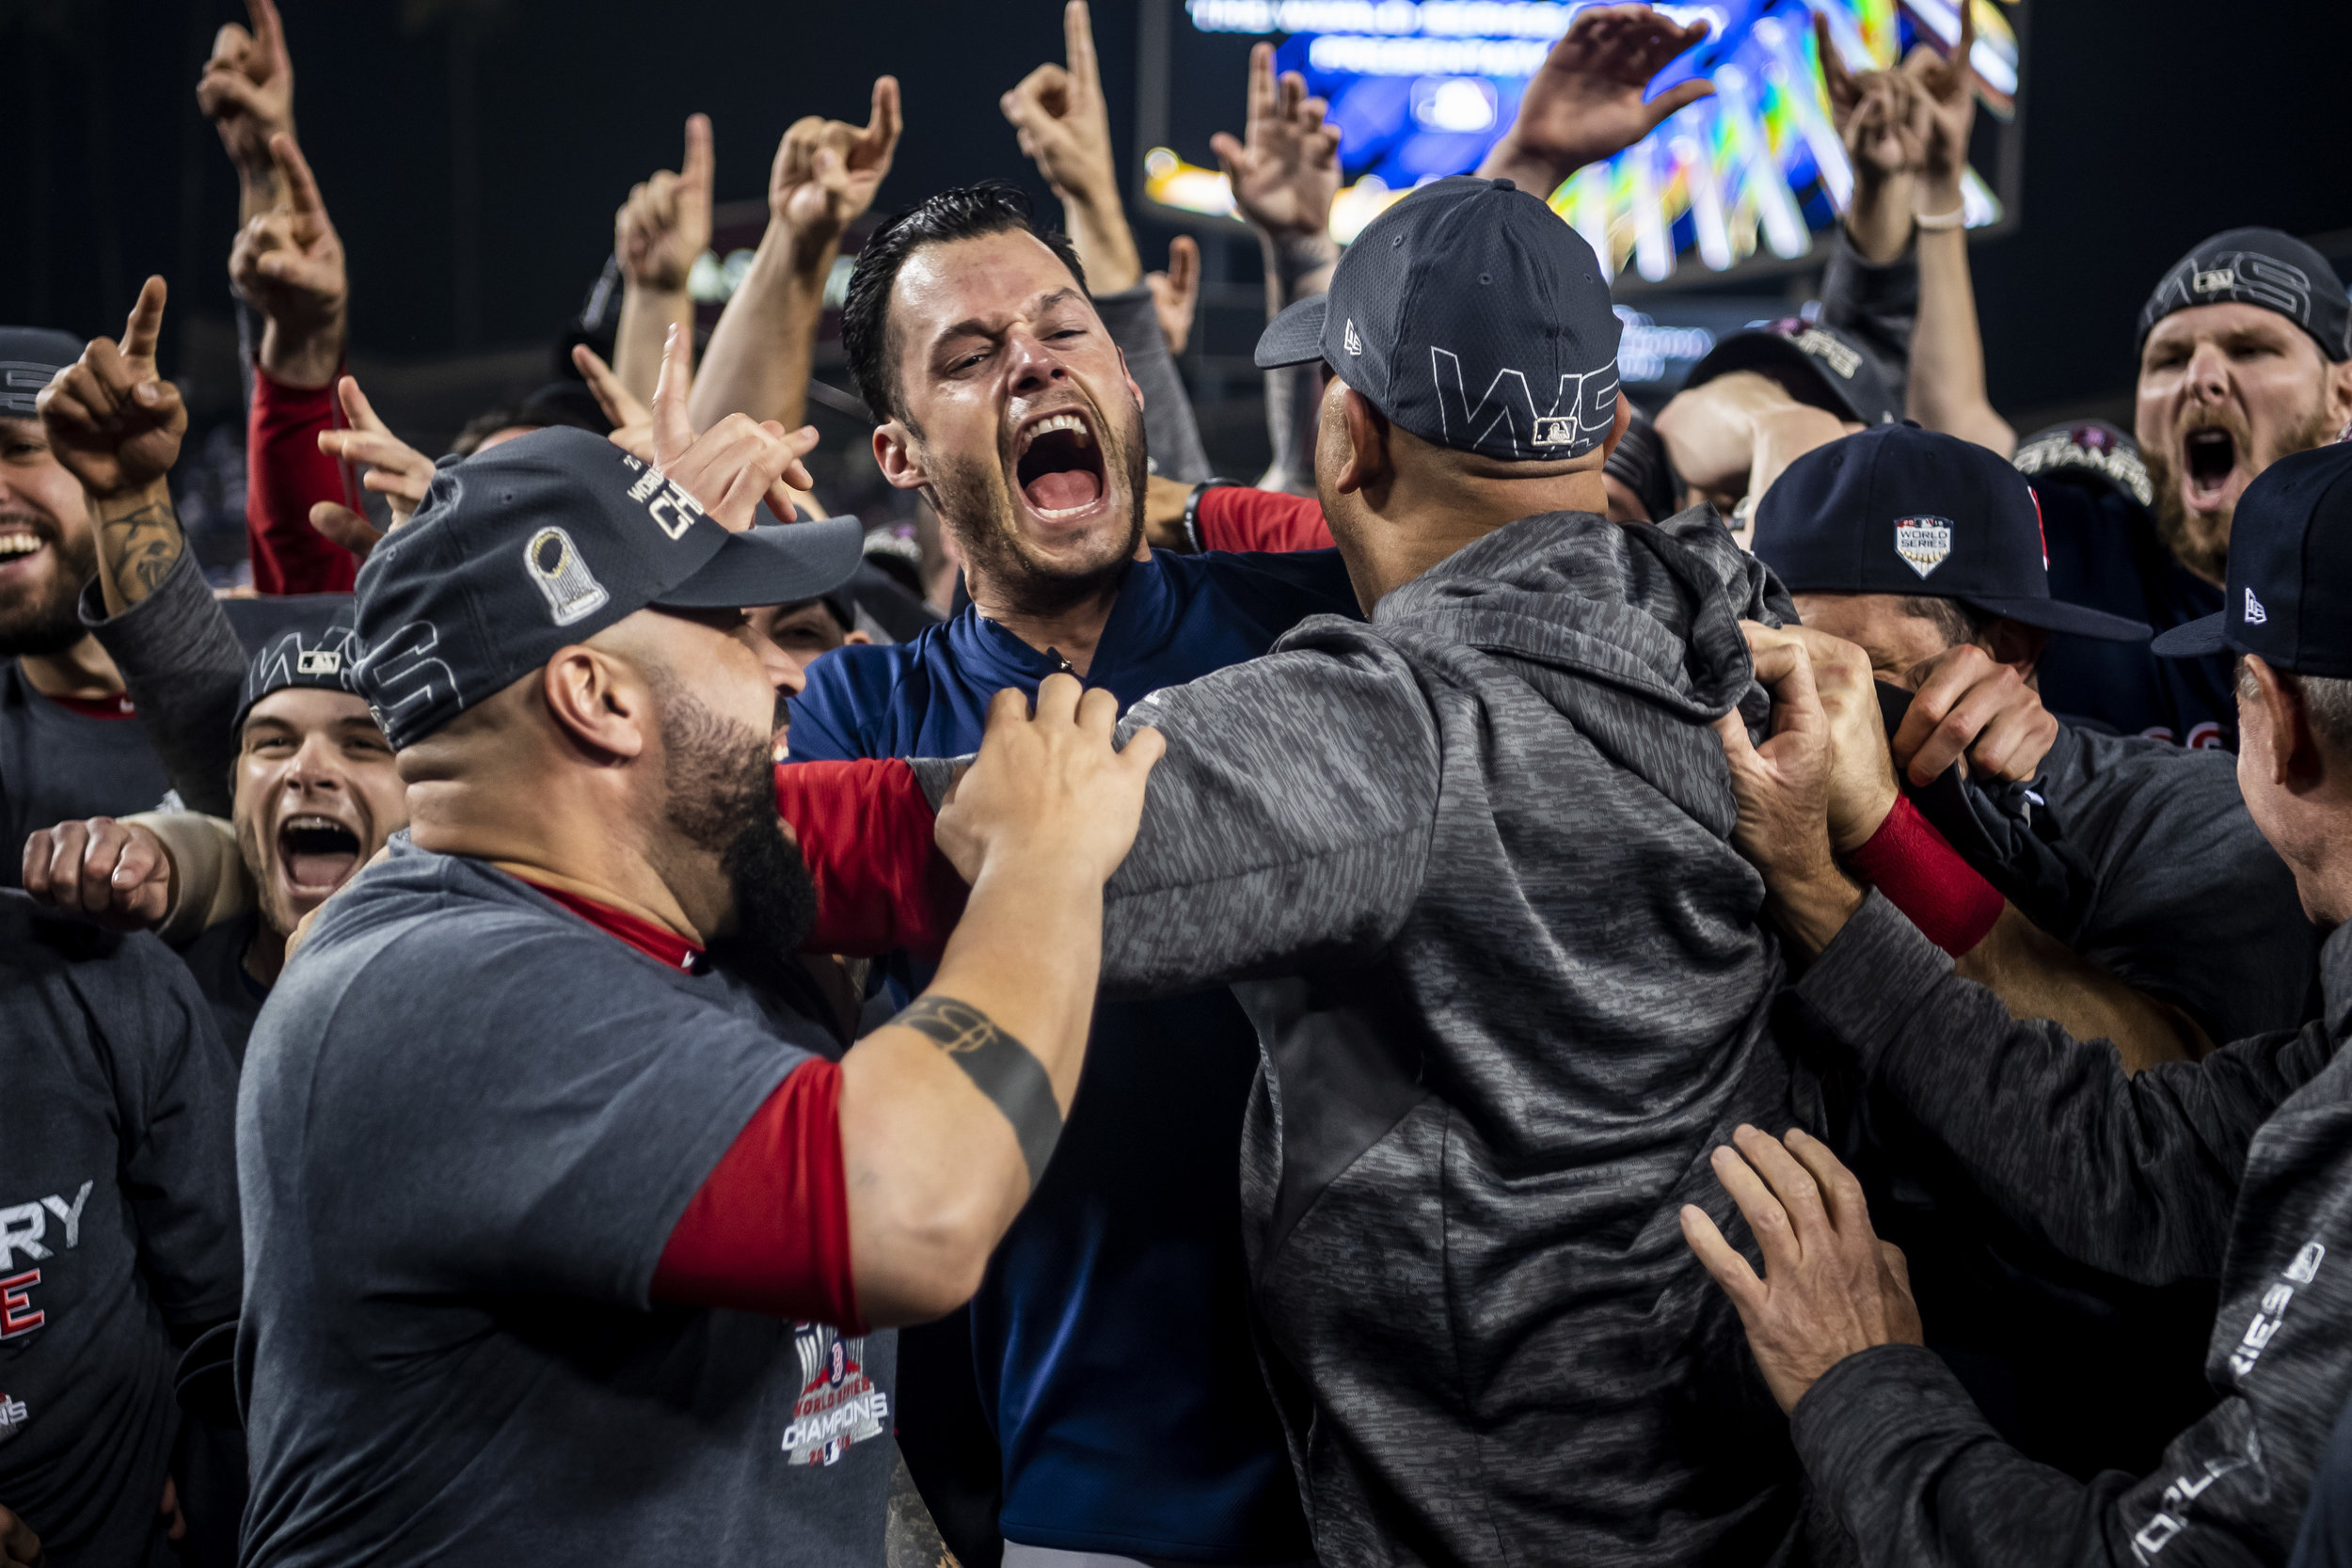 October 28, 2018, Los Angeles, Ca: The team celebrates  after the Boston Red Sox defeated the Los Angeles Dodgers in Game 5 to win the World Series at Dodger Stadium in Los Angeles, California on Saturday, October 28, 2018. (Photo by Matthew Thomas/Boston Red Sox)